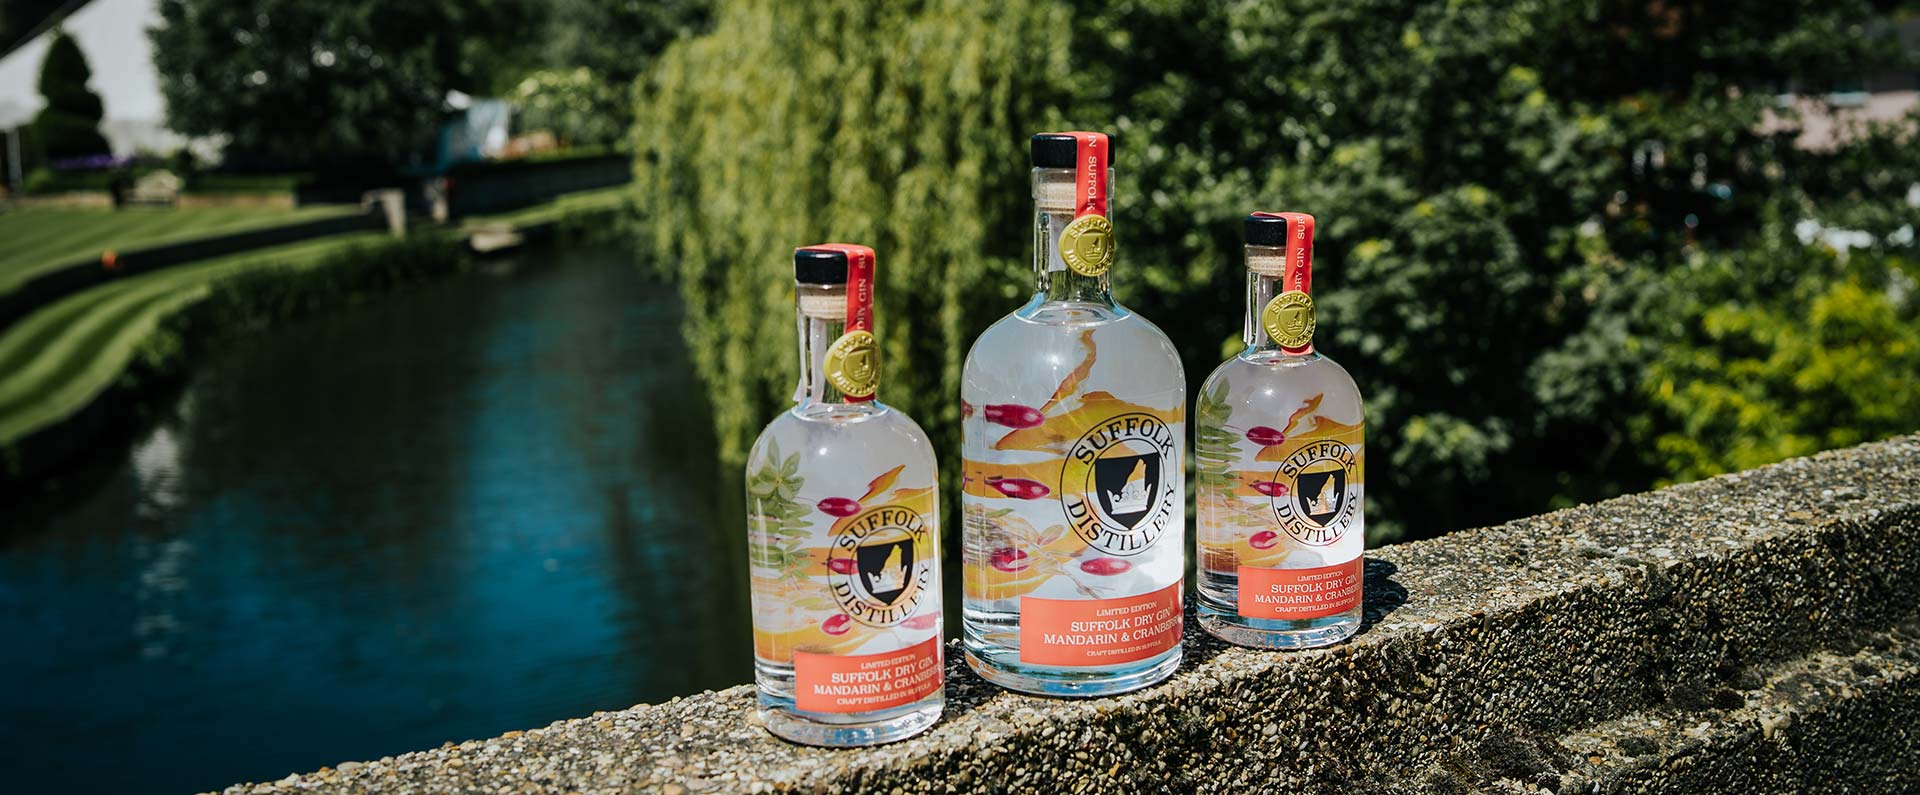 Mandarin Gin, Suffolk, Distillery